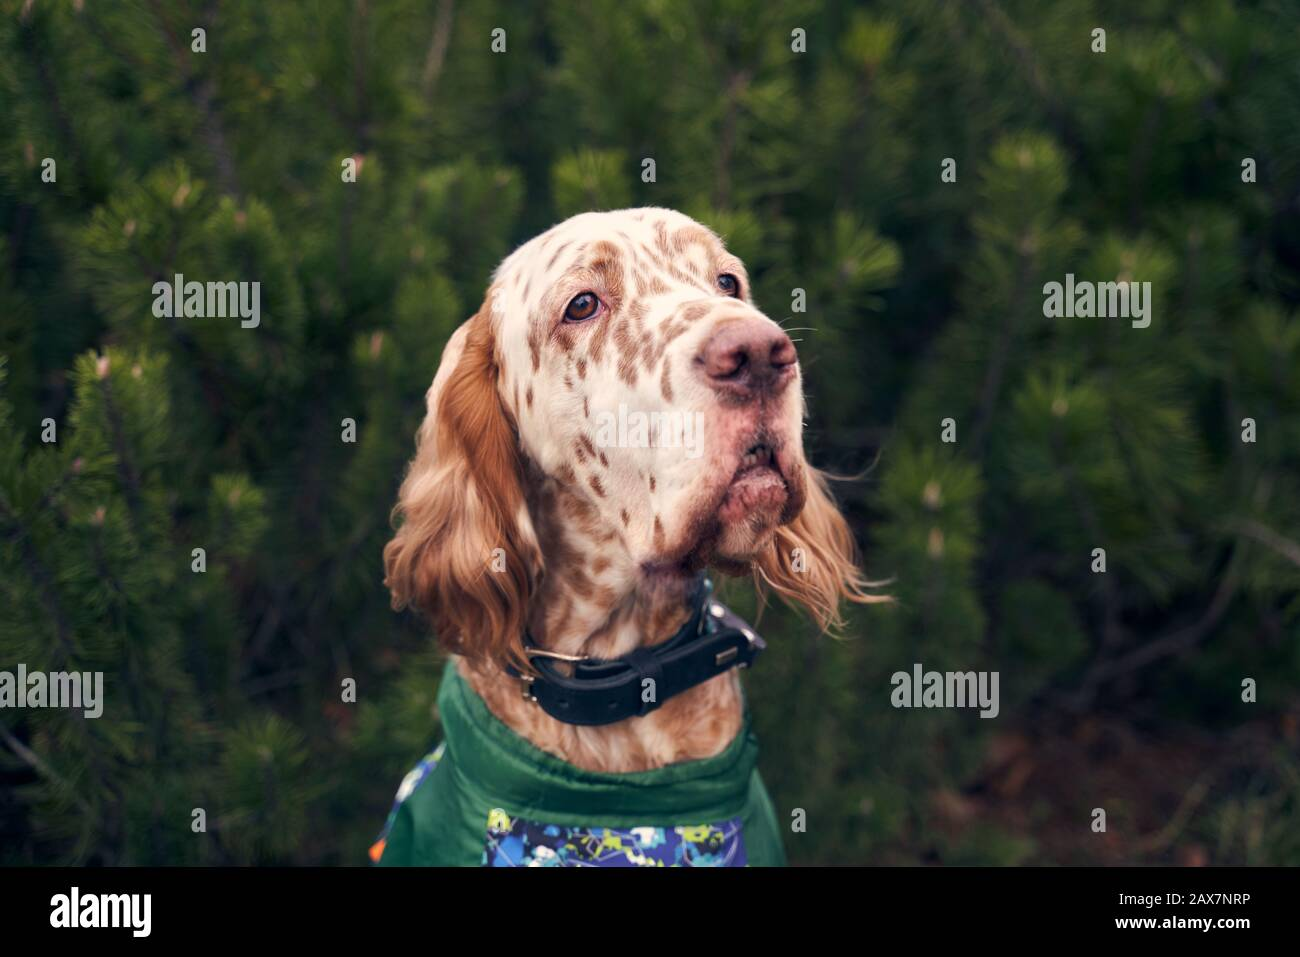 brown dog with spots on muzzle hanging curly ears Stock Photo